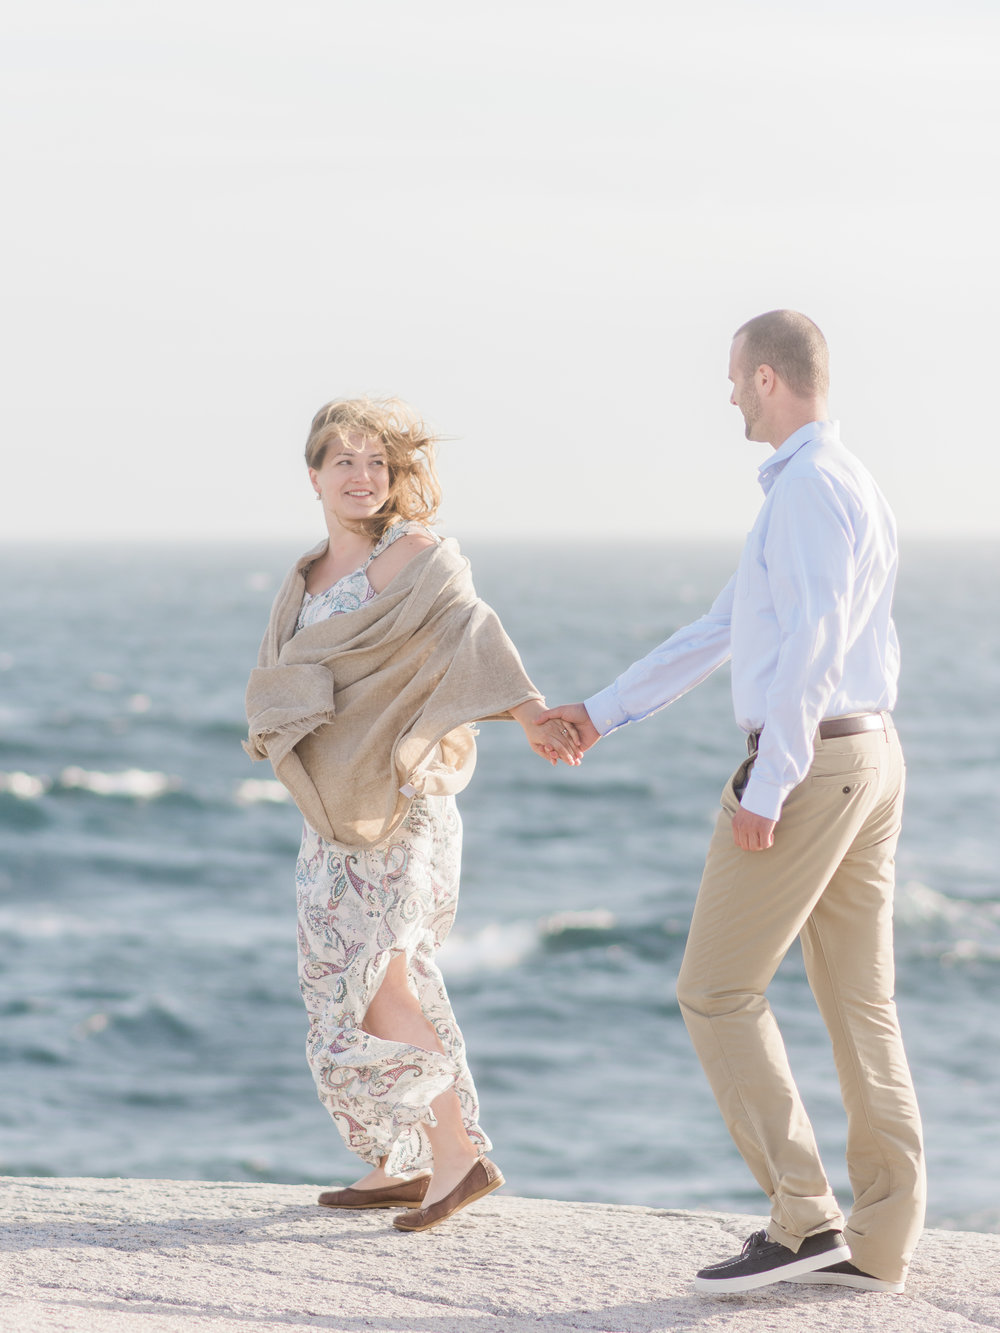 Jacqueline Anne Photography - Alex and Andrew Engagement at Peggy's Cove-1-10.jpg